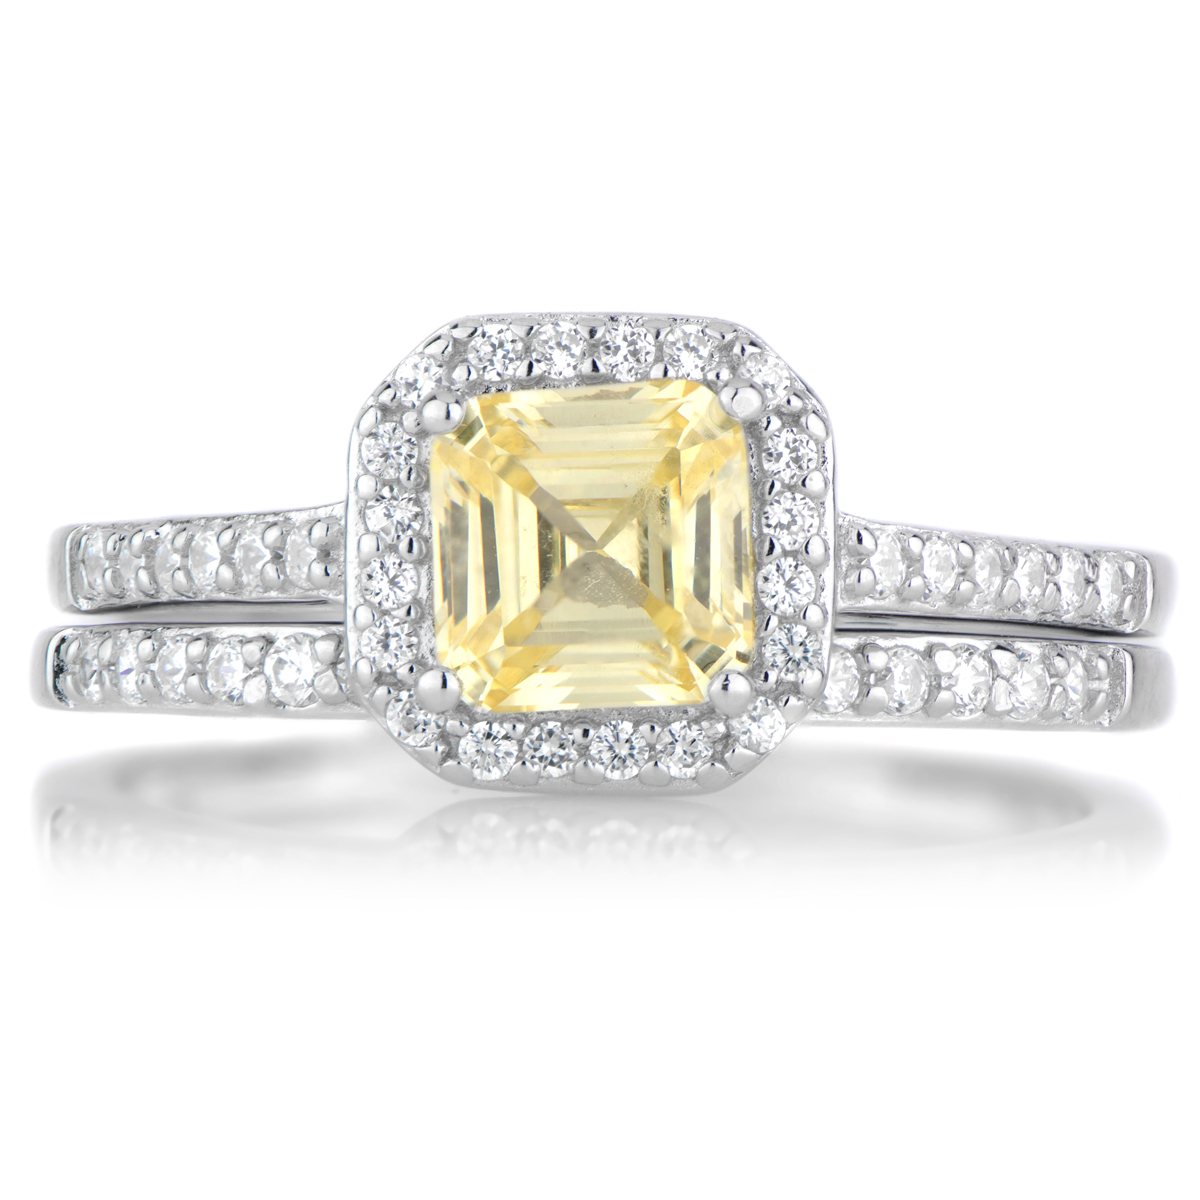 cz wedding ring set roll off image to close zoom window - Cubic Zirconia Wedding Ring Sets